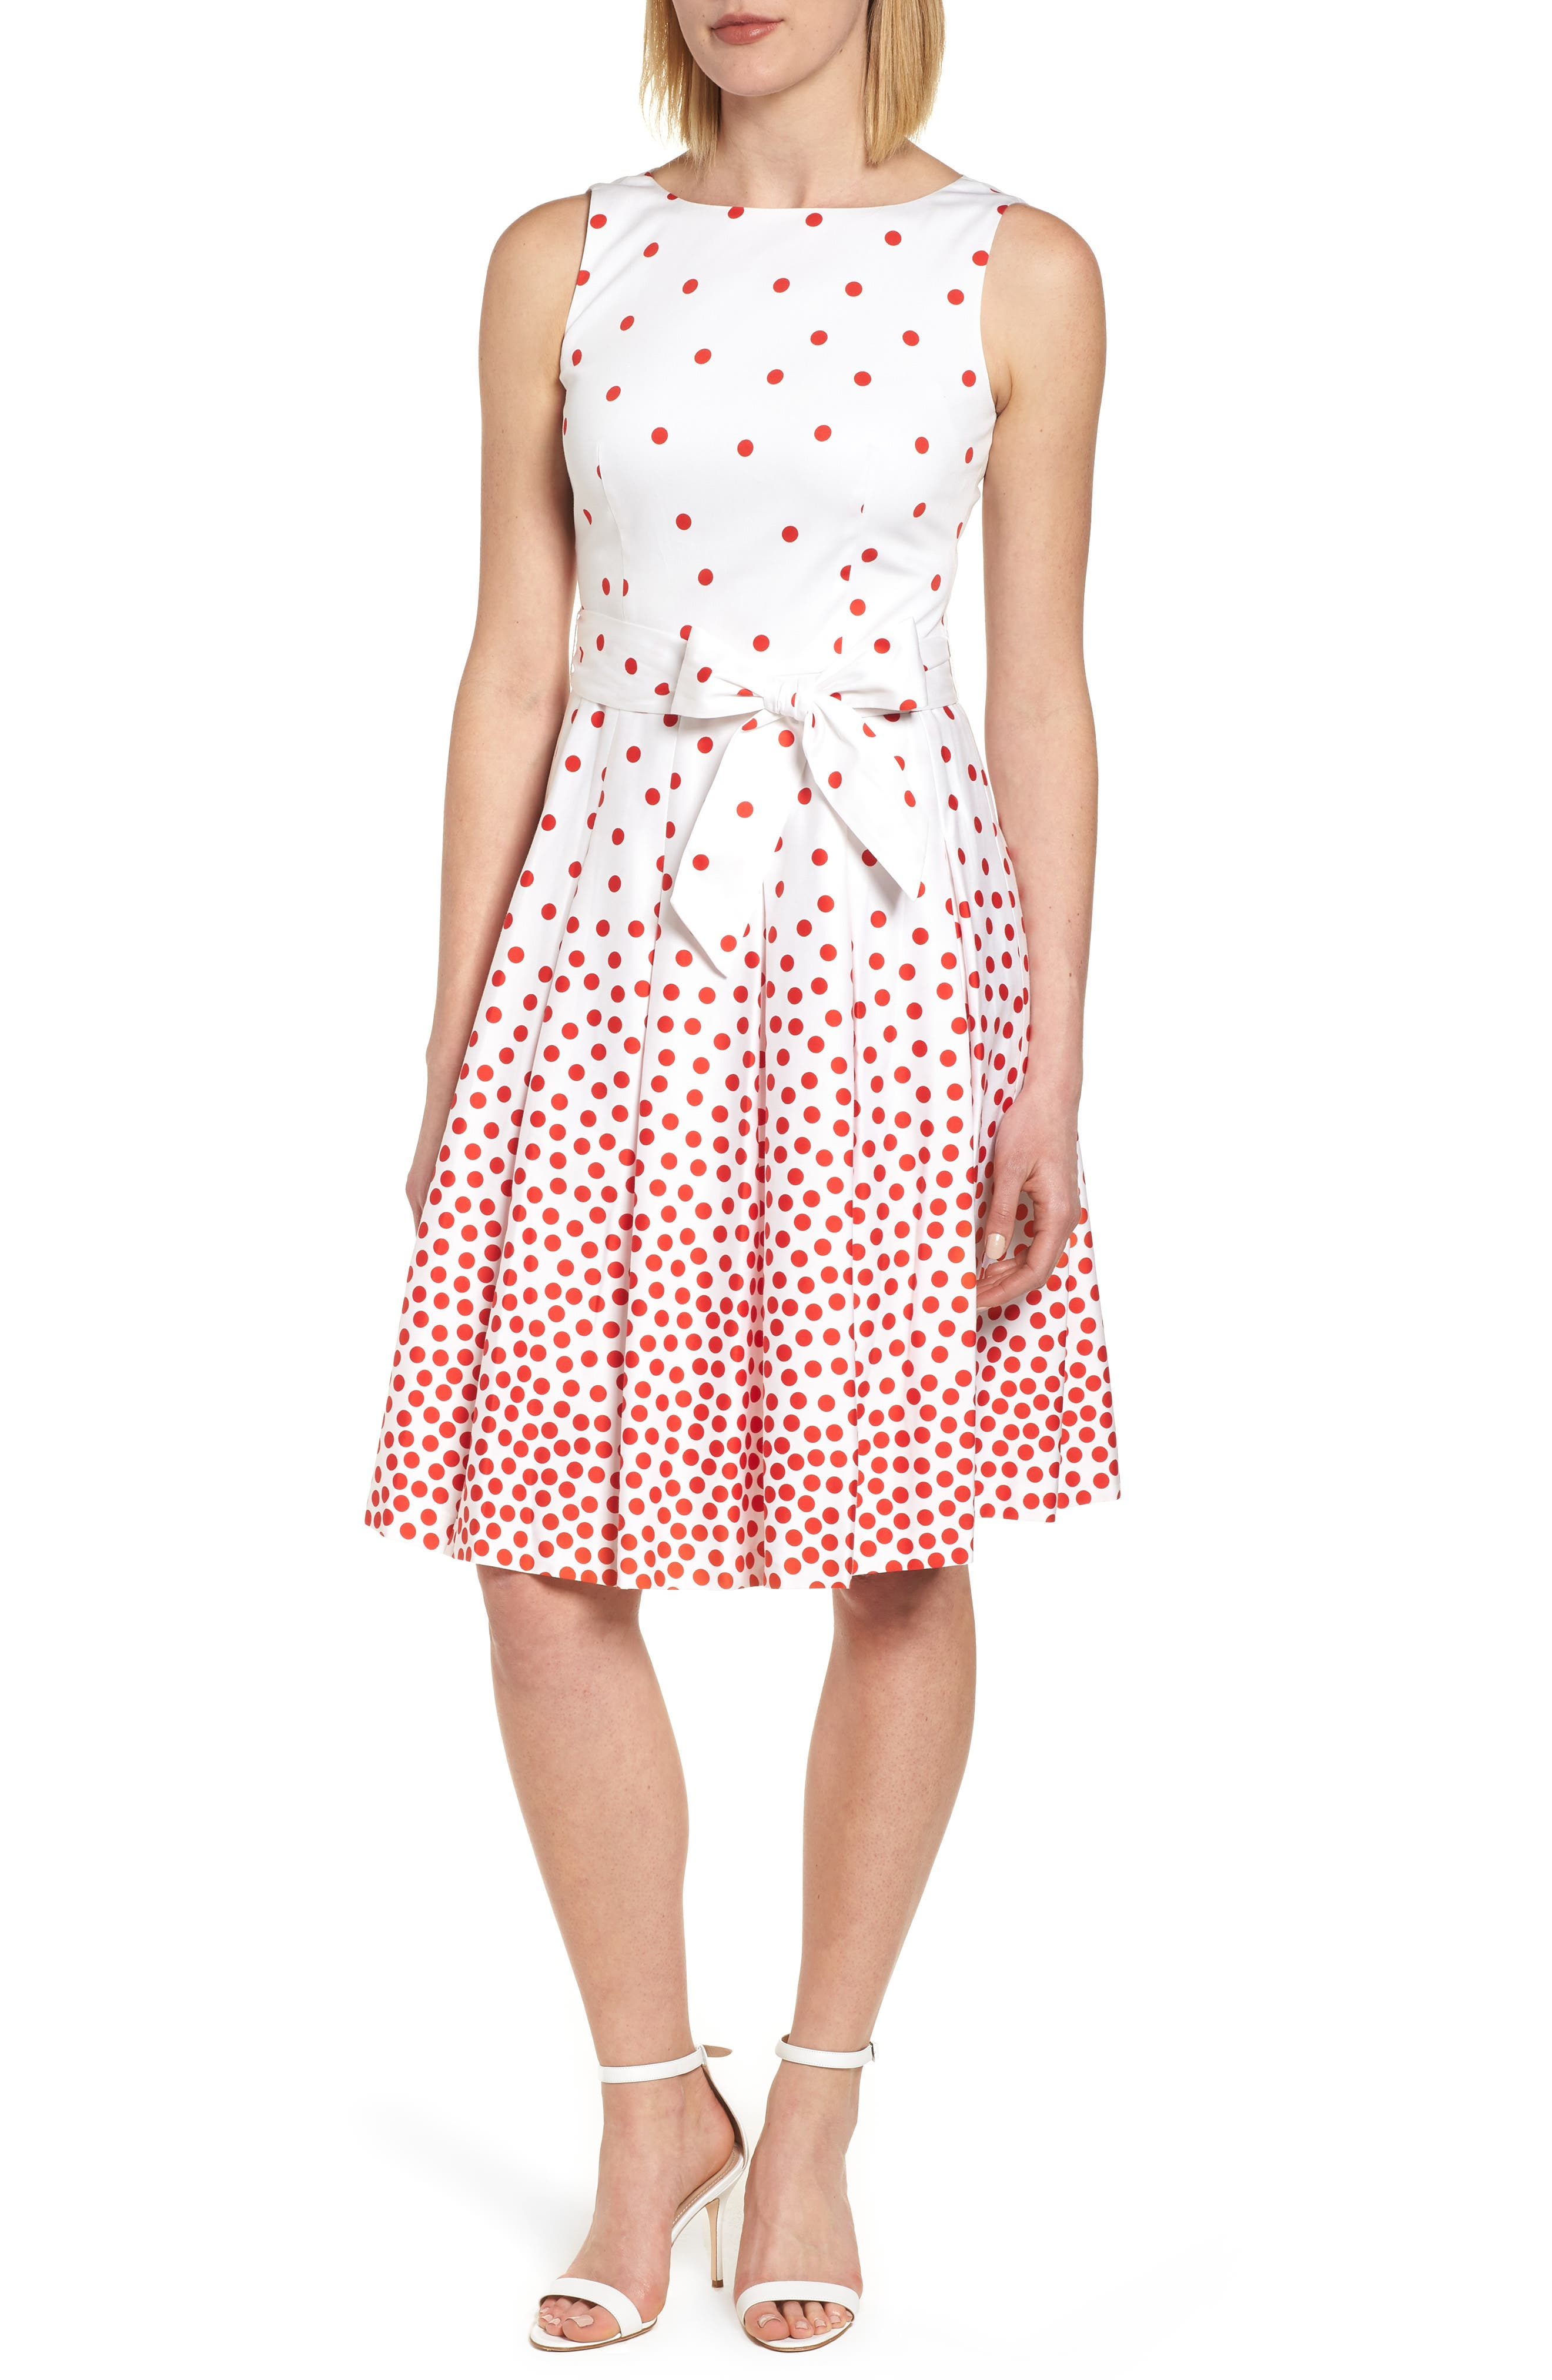 New York Scattered Dot Stretch Cotton Dress,                             Main thumbnail 1, color,                             Optic White/ Tomato